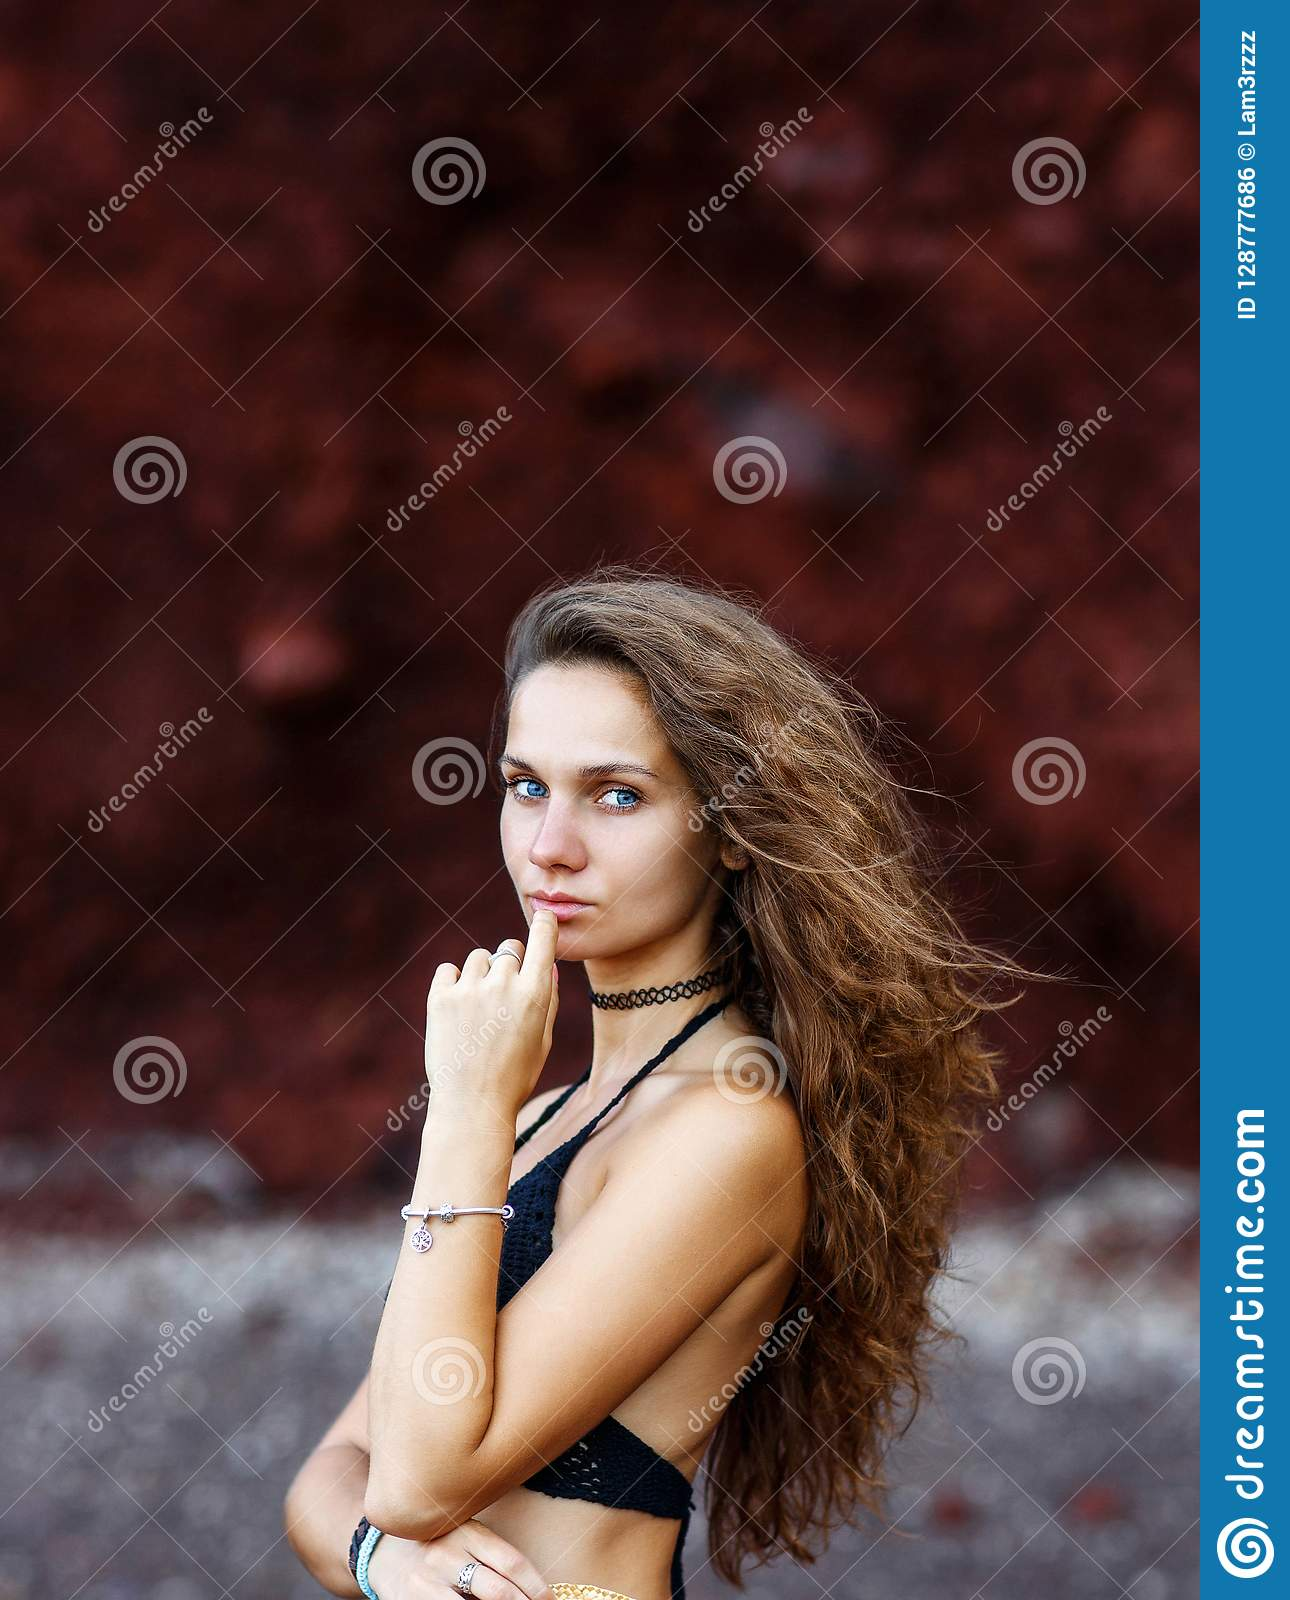 Portrait of Sexy Brunette on Red Background Stock Photos